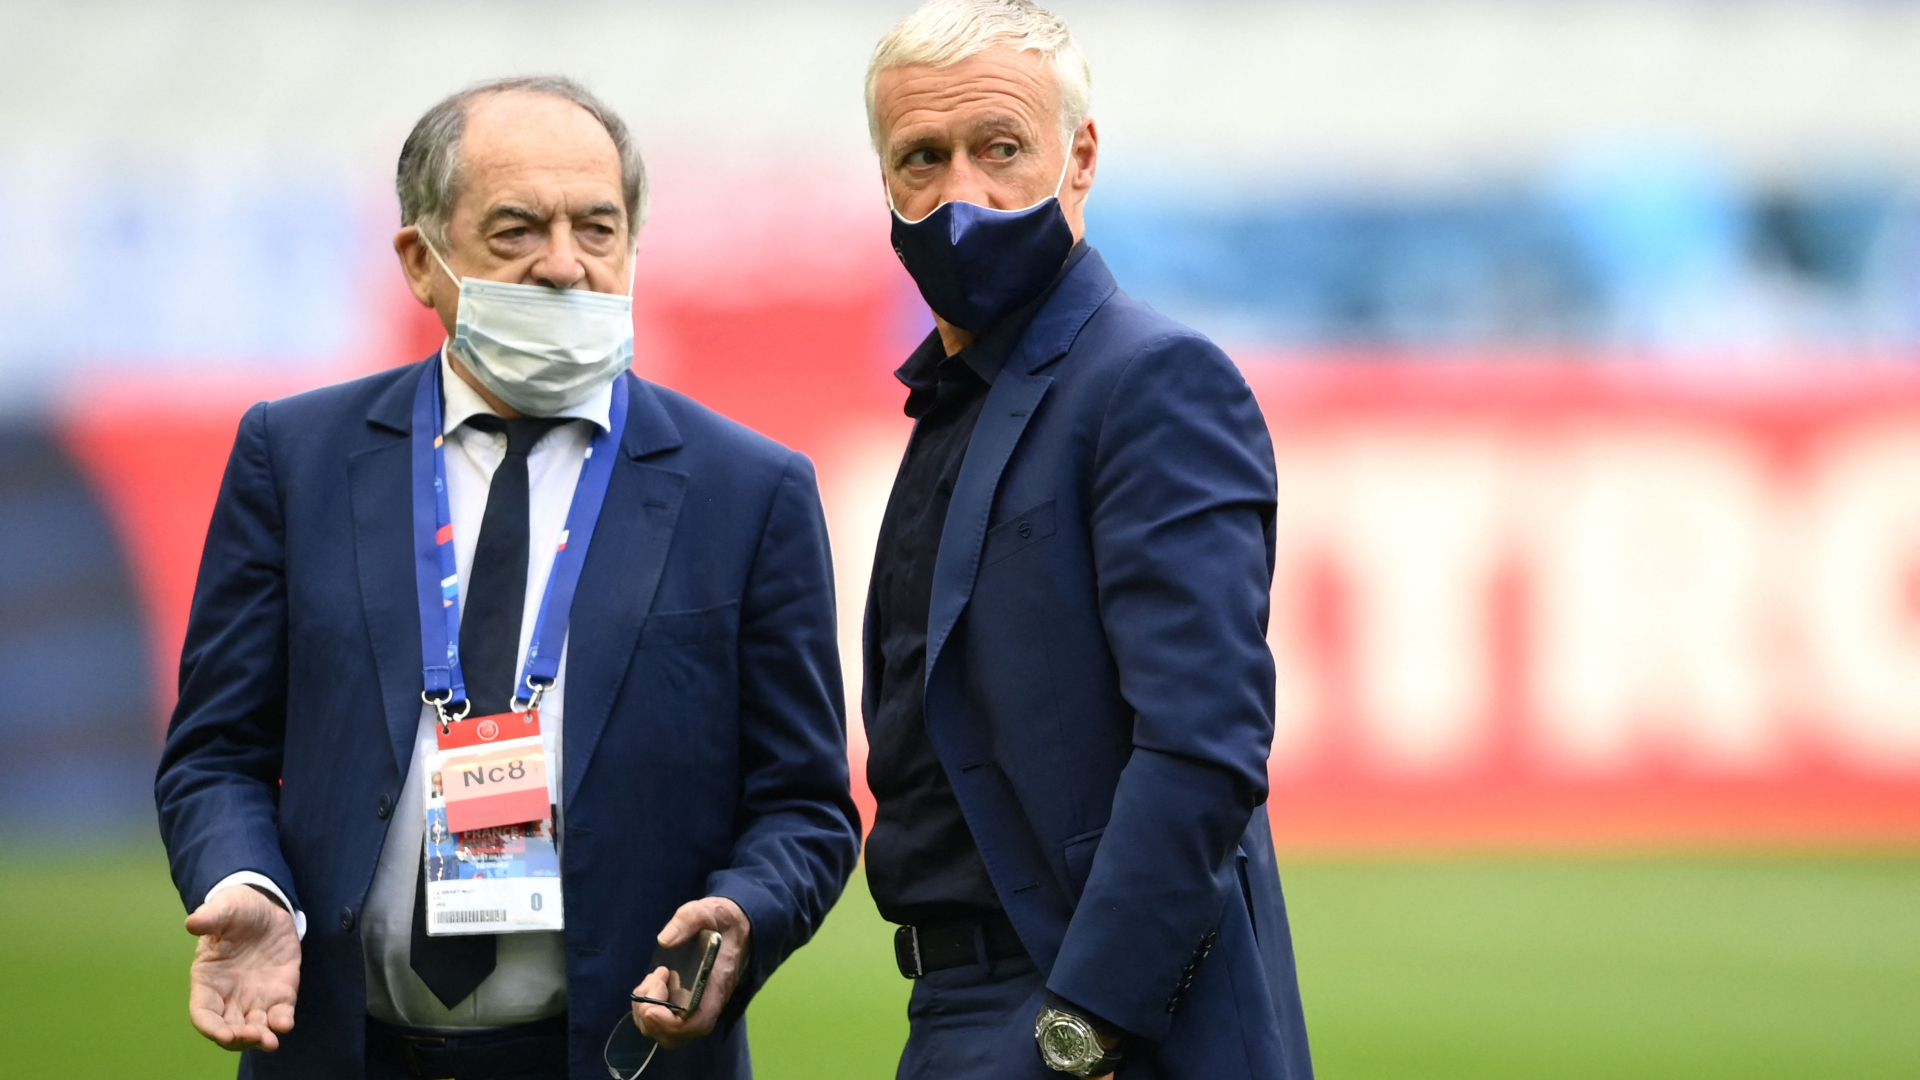 'The question was settled in three minutes' - Deschamps backed to stay as France boss by FFF president Le Graet